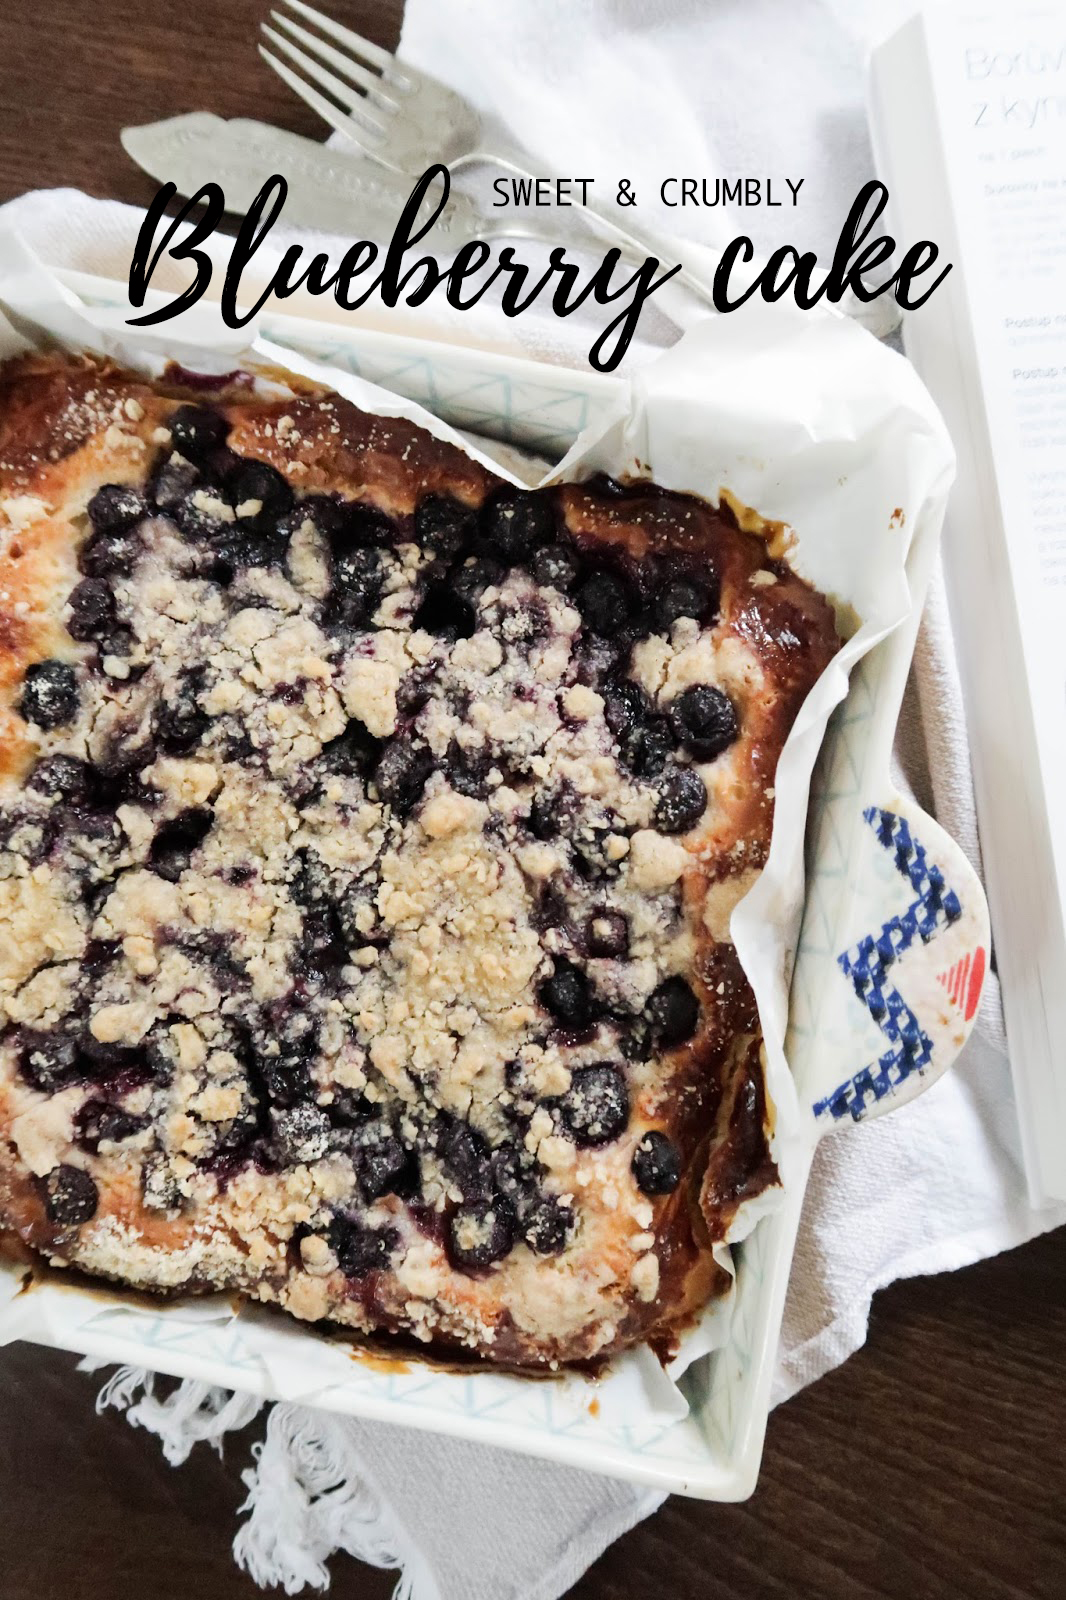 Sweet & crumbly blueberry cake